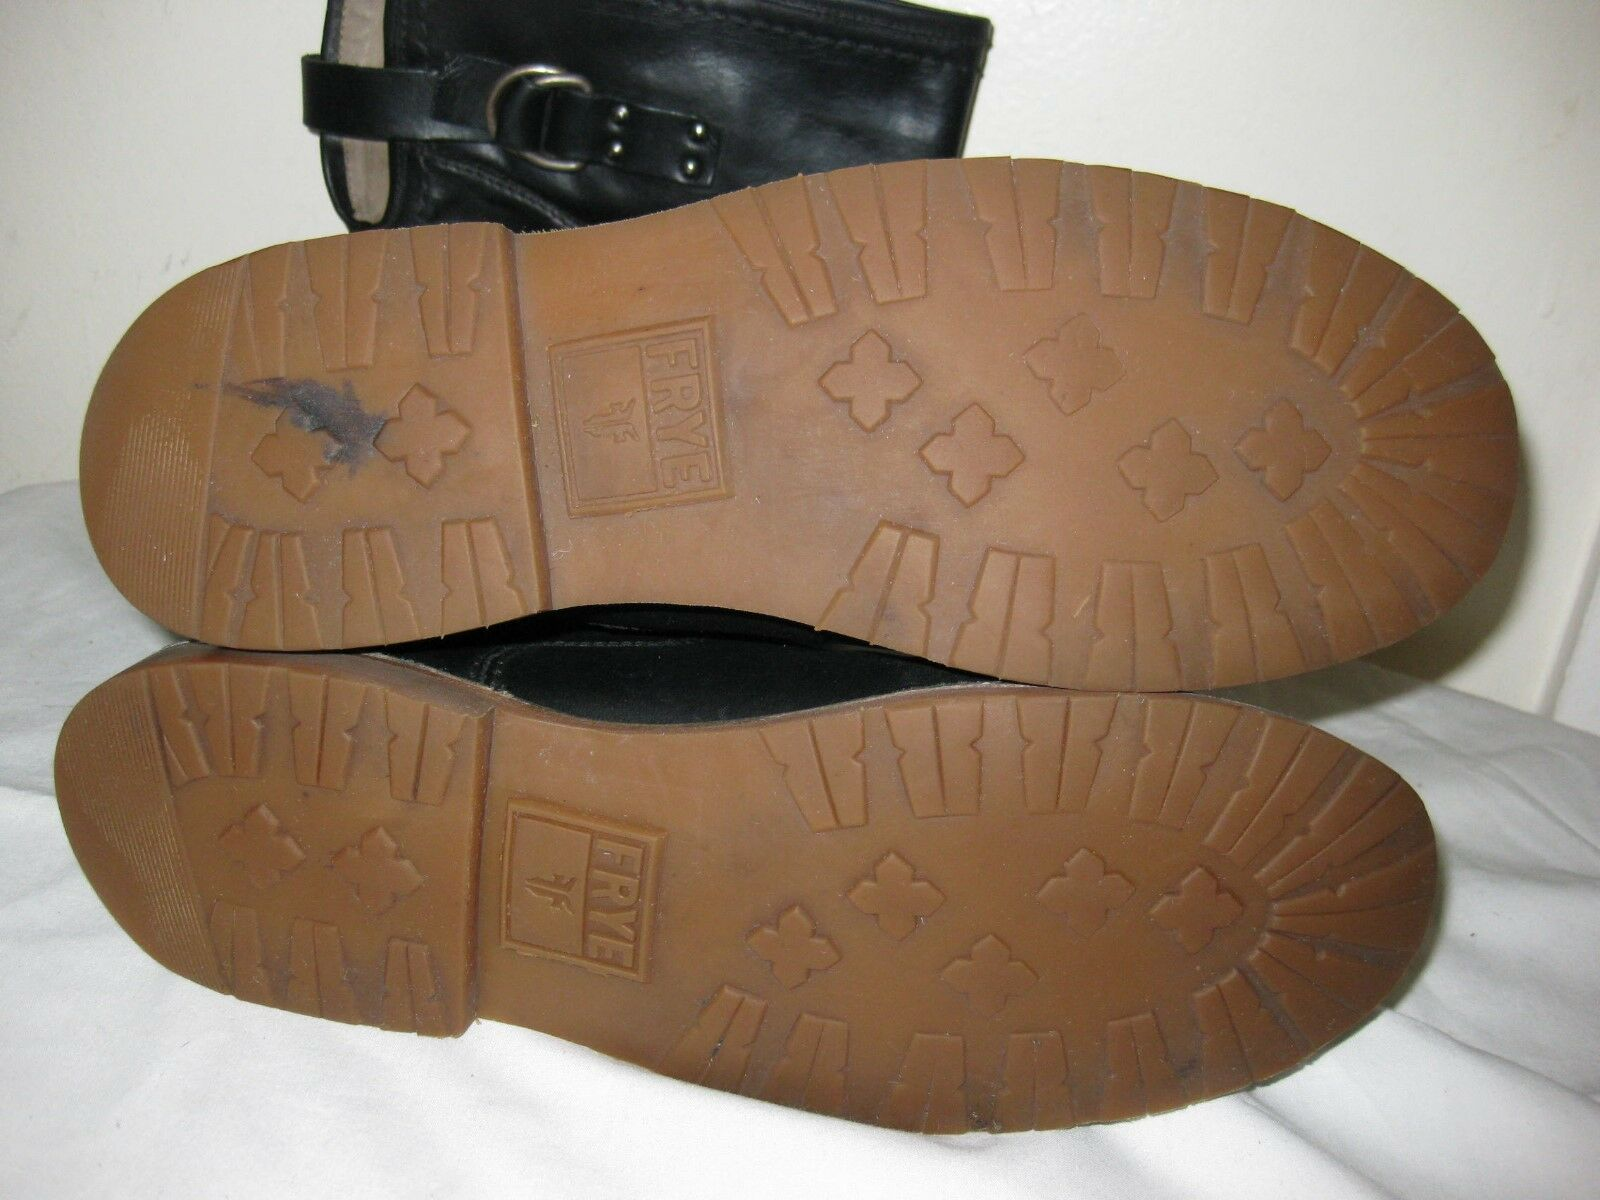 Frye Celia D démarrage Leather chaussures chaussures chaussures   76345 Taille 7.5 B 6885f0